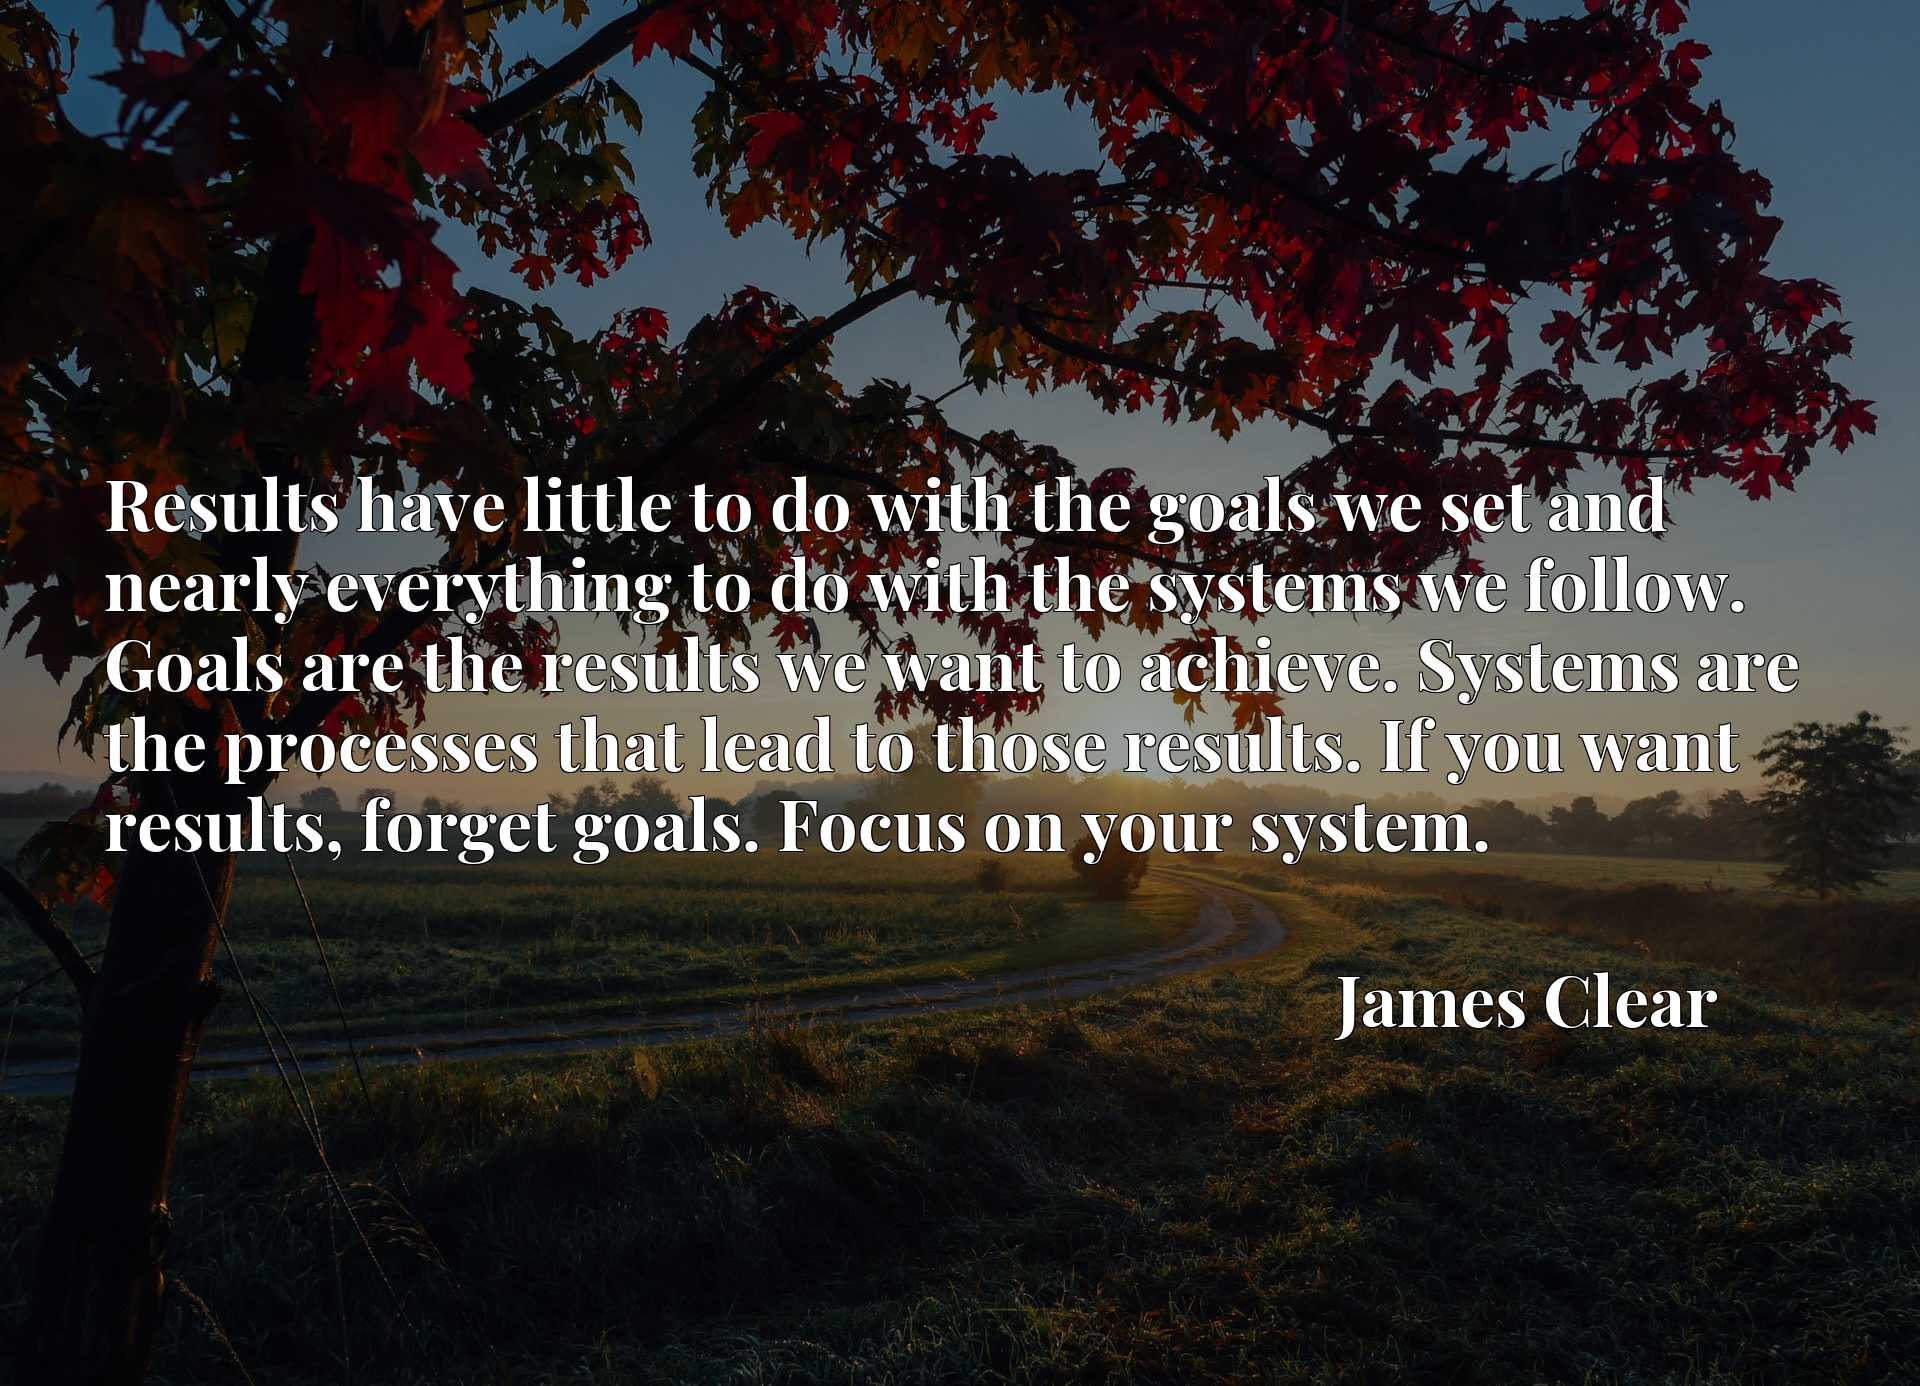 Results have little to do with the goals we set and nearly everything to do with the systems we follow. Goals are the results we want to achieve. Systems are the processes that lead to those results. If you want results, forget goals. Focus on your system.